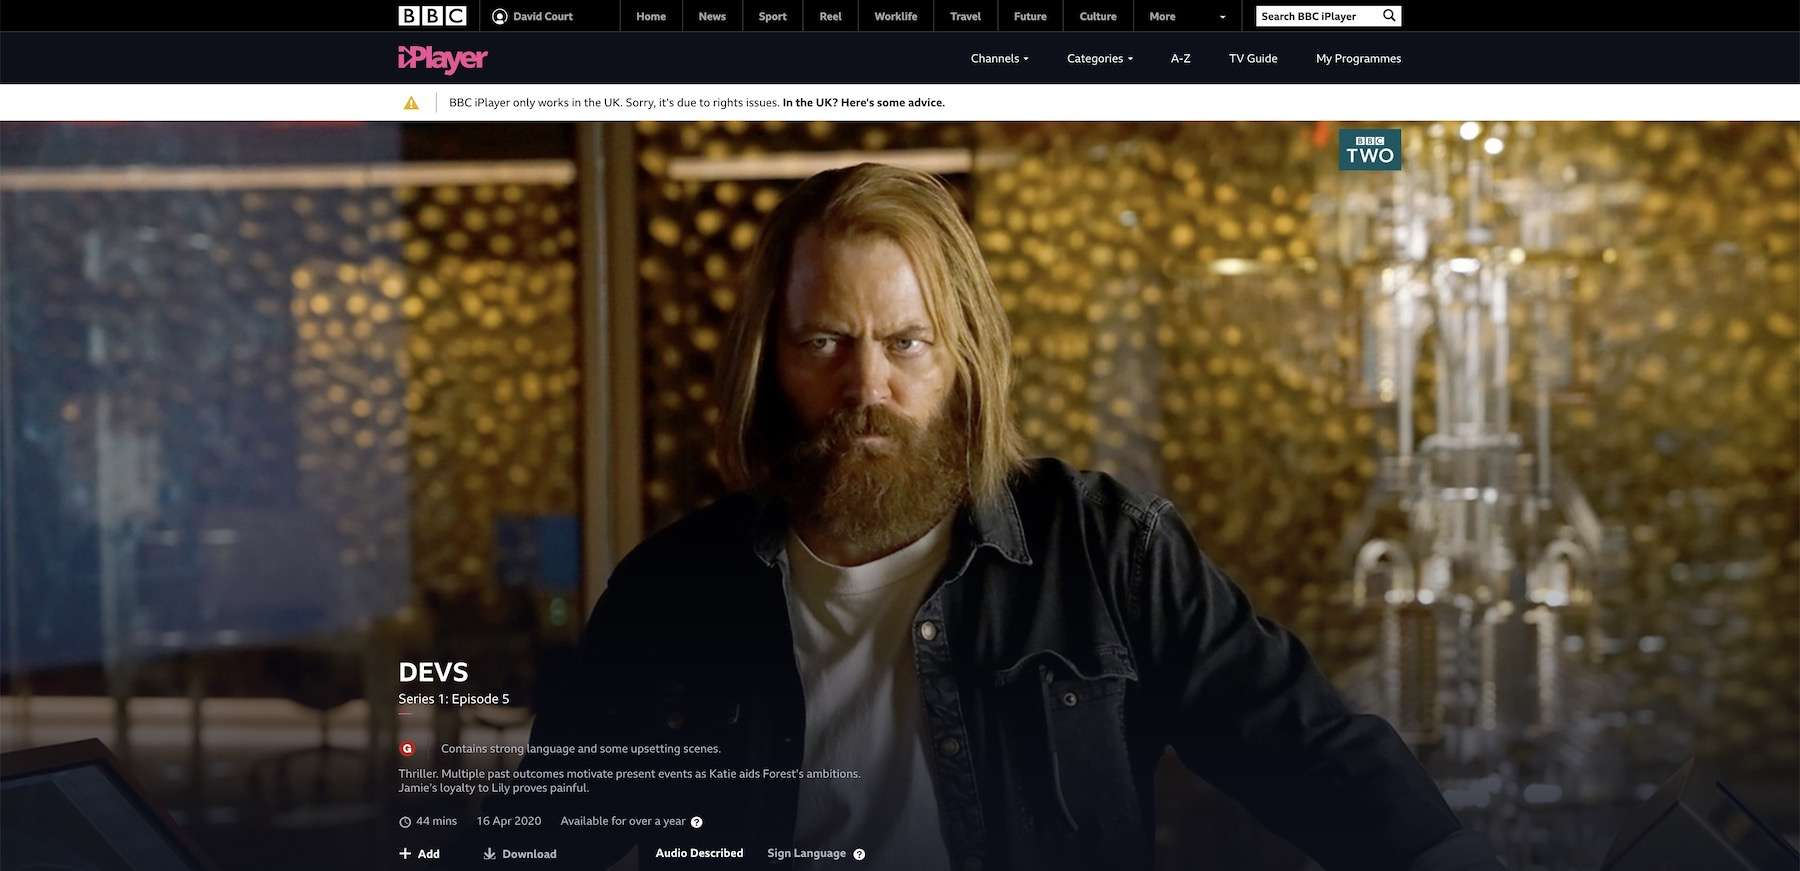 BBC iPlayer not working with VPN? Here's how to fix that! (May 2020)